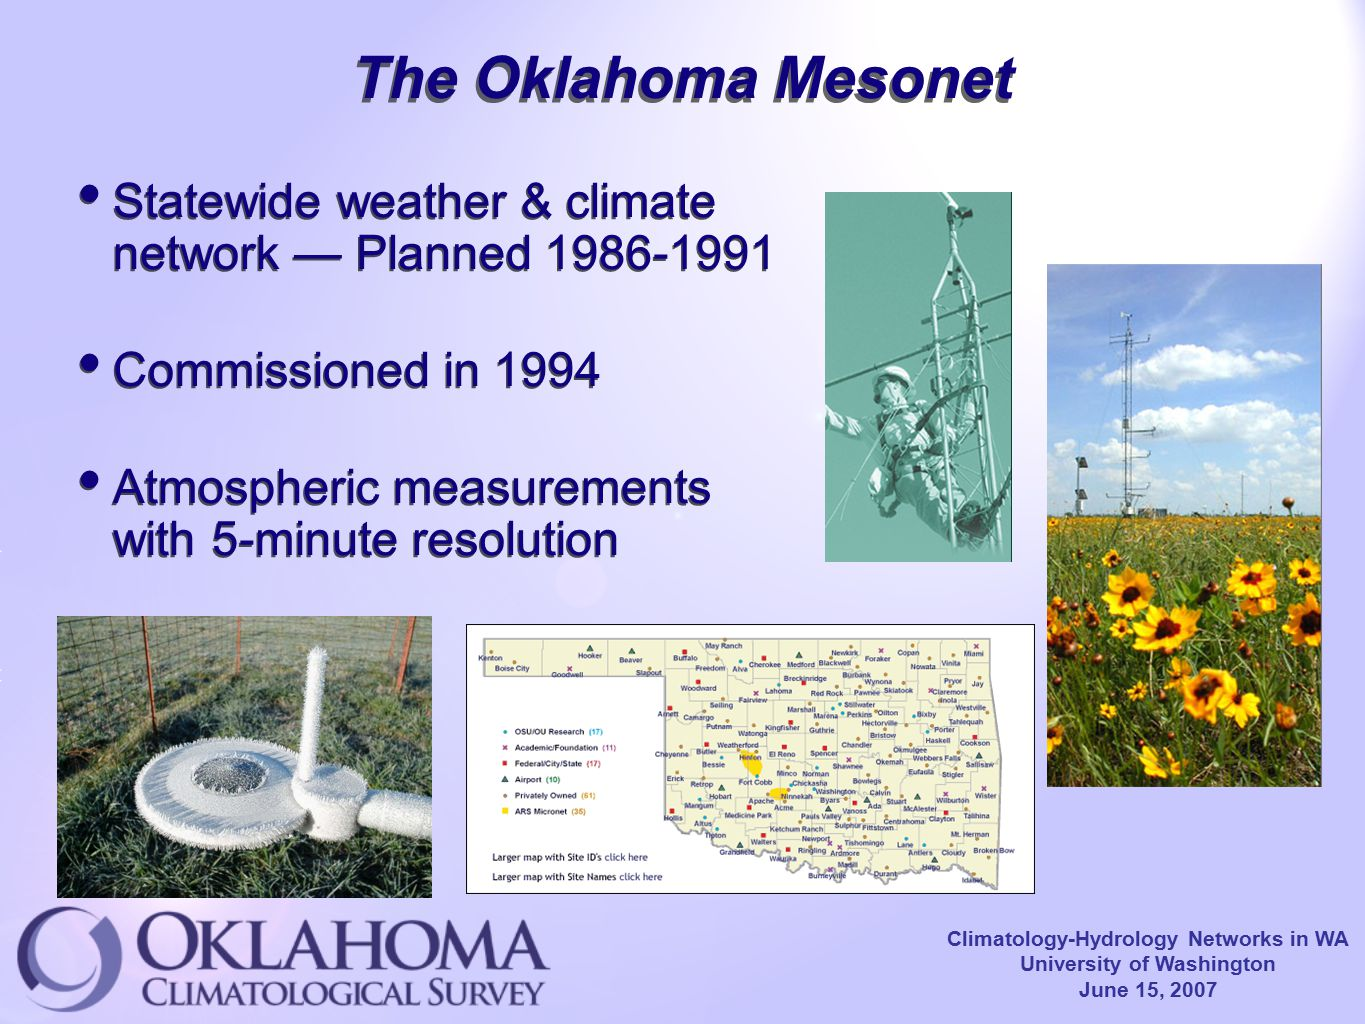 Climatology-Hydrology Networks in WA University of Washington June 15, 2007 Daily Mean Temperatures at Goodwell, OK for 2005 (Data from 'Co-located' CRN, HCN & Mesonet Sites) Figure 6 Within +/- 1 C: 99.4% Within +/- 1 C: 65.8%